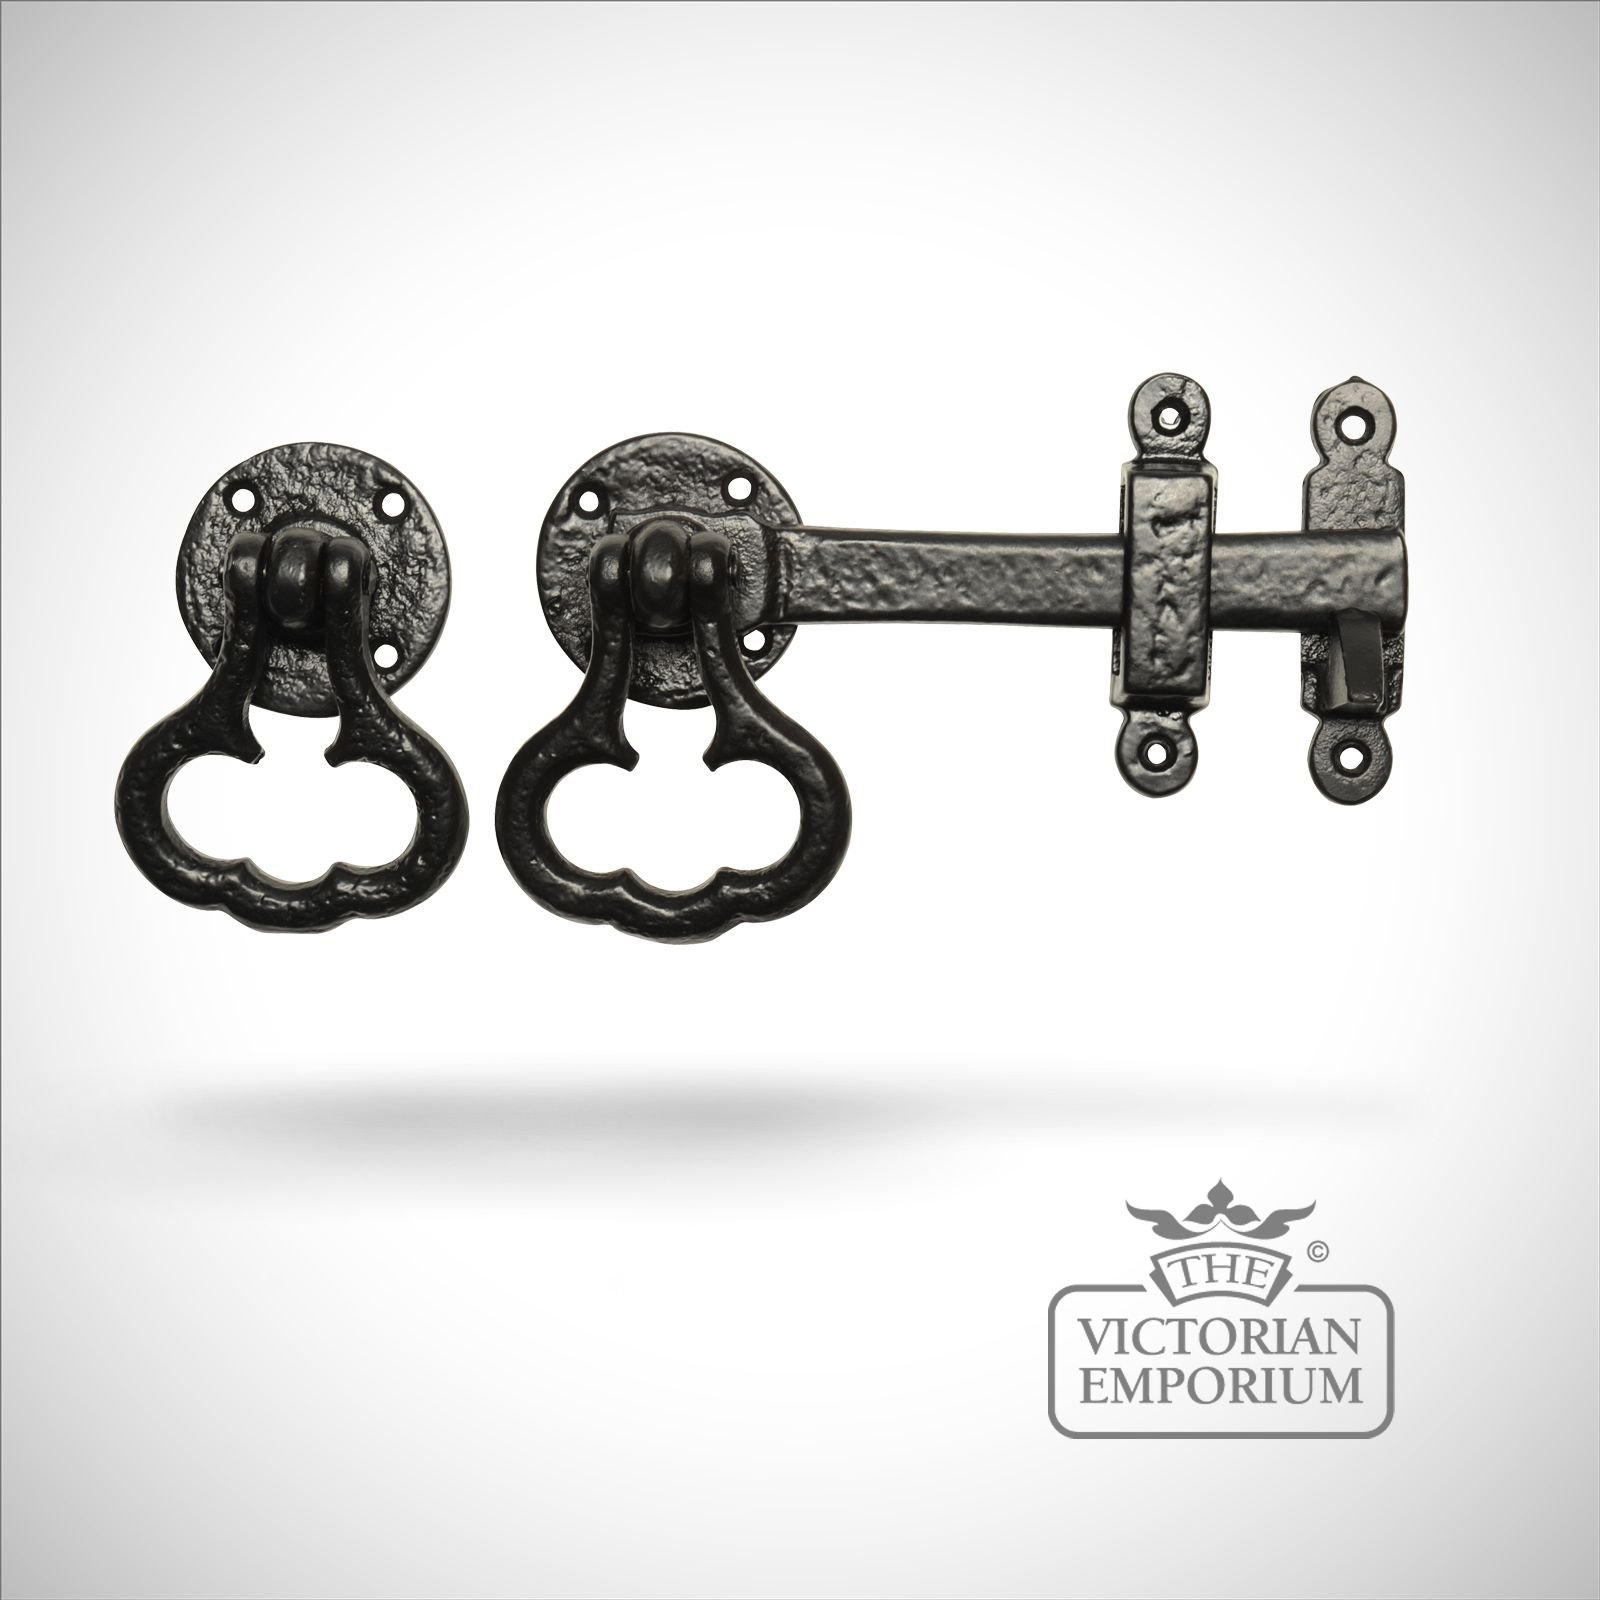 Black Iron Handcrafted Latch With Decorative Handle Latches